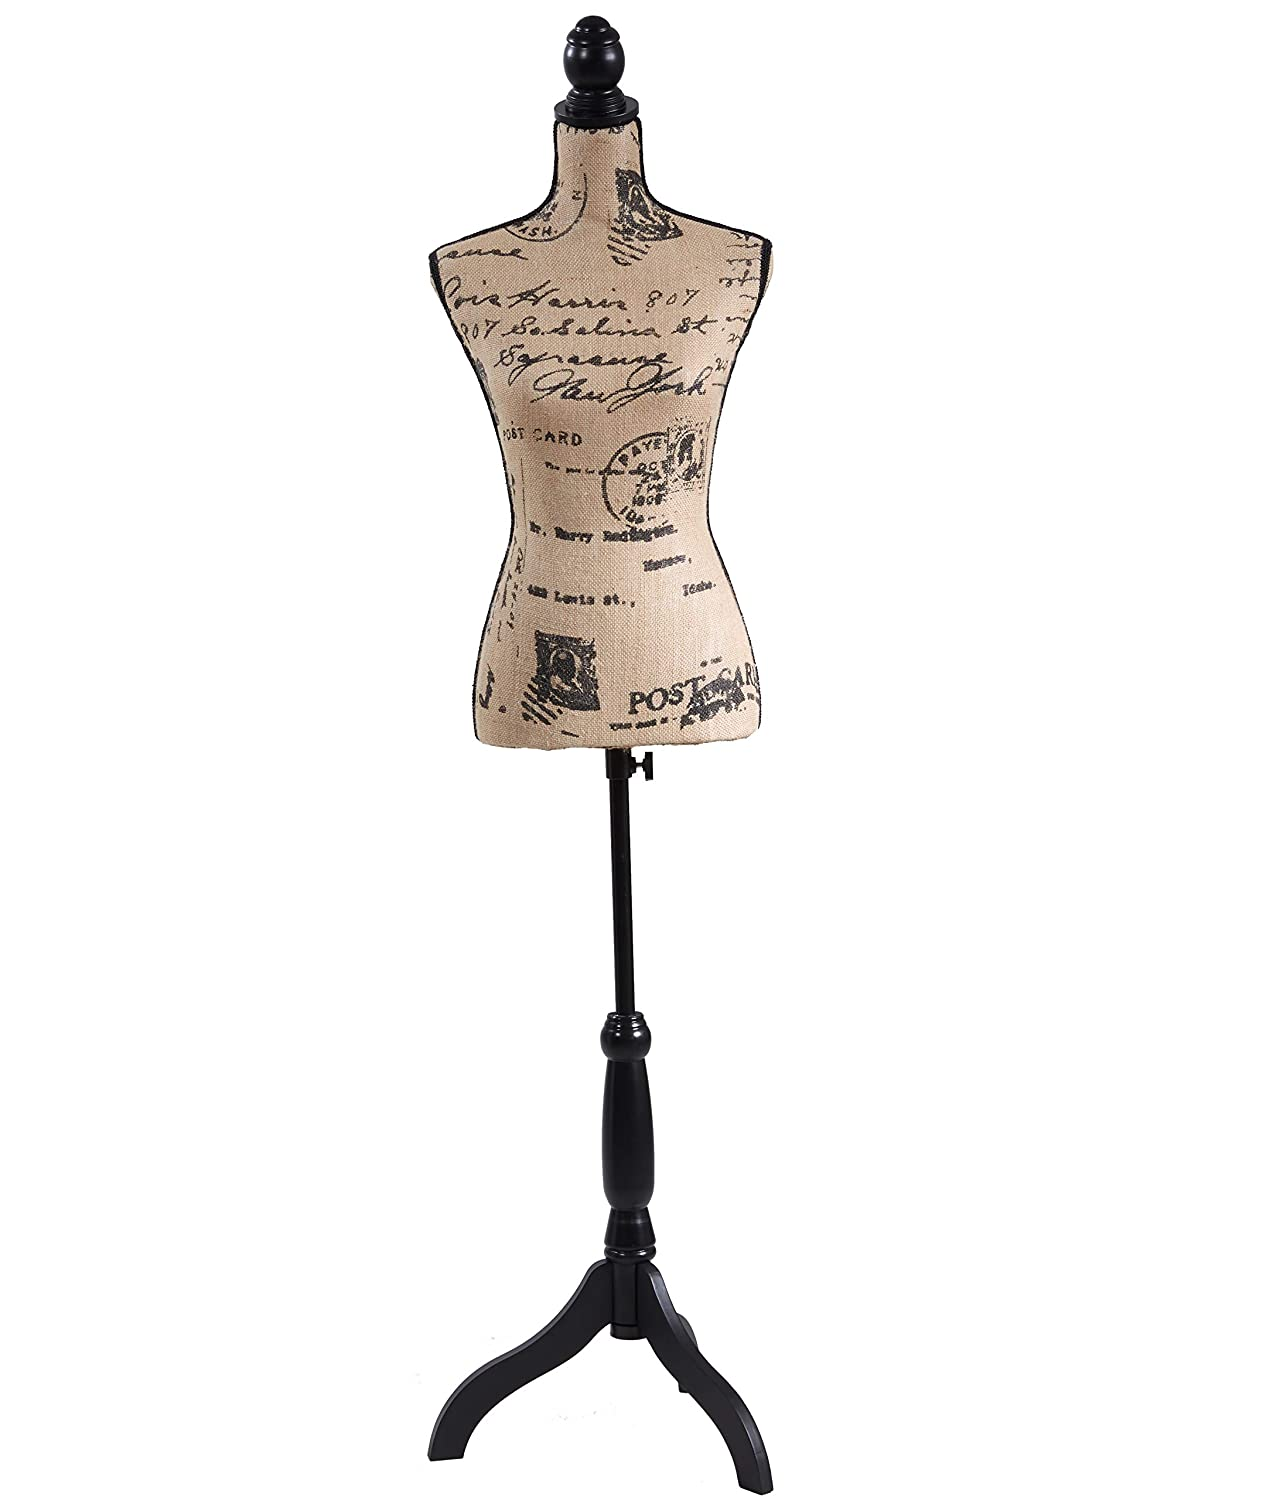 Adjustable Female Dress Form Pinnable Mannequin Body Torso with Wooden Tripod Base Stand (Gray Line)